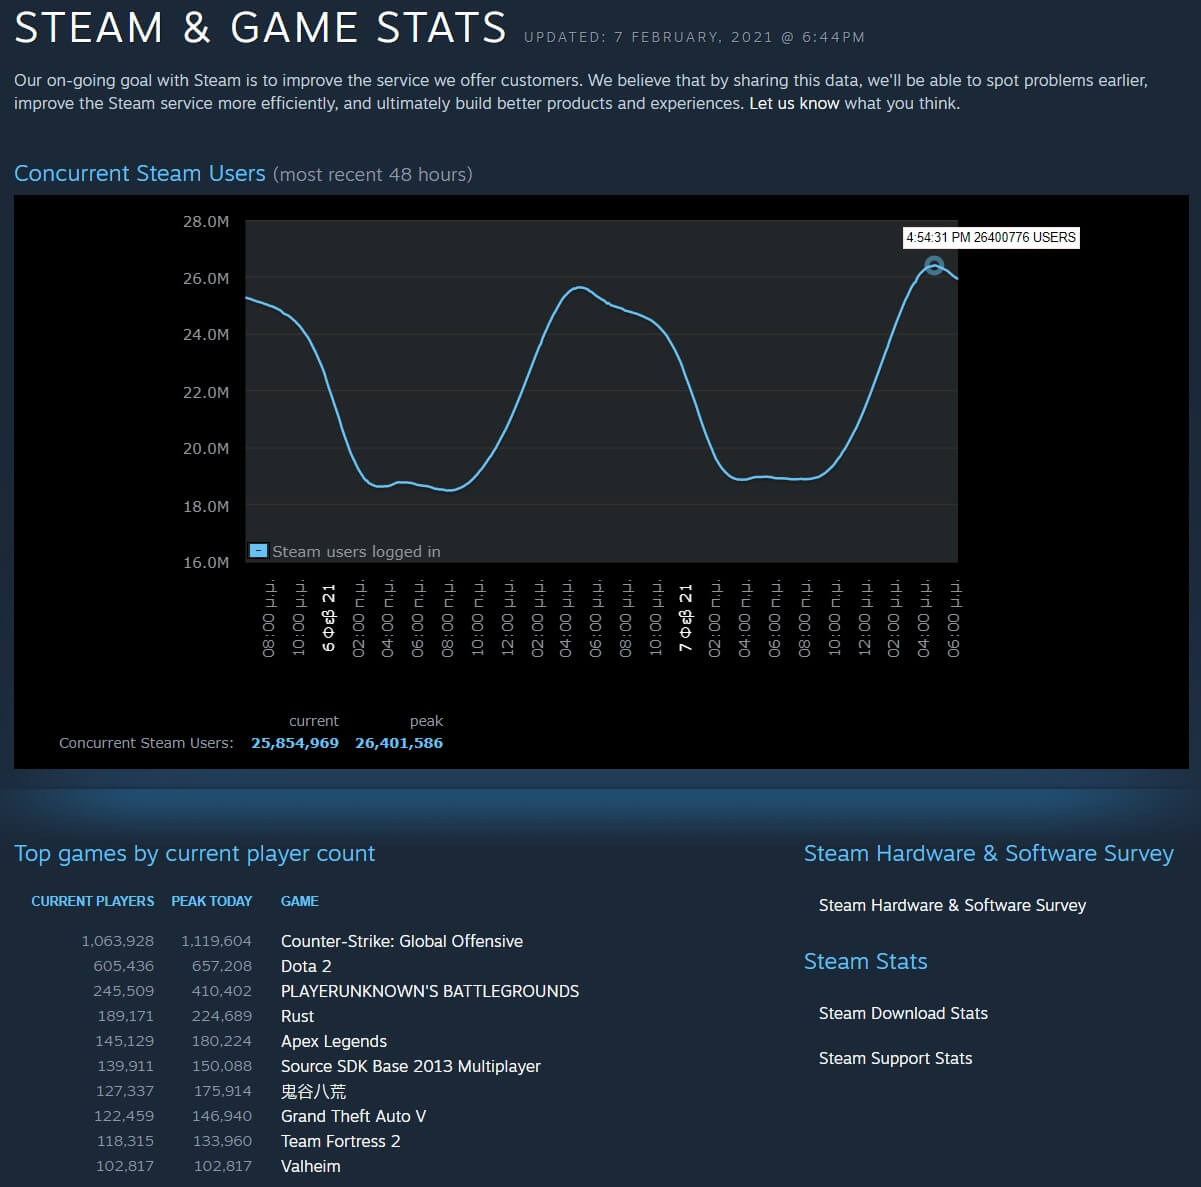 Steam 26 million concurrent